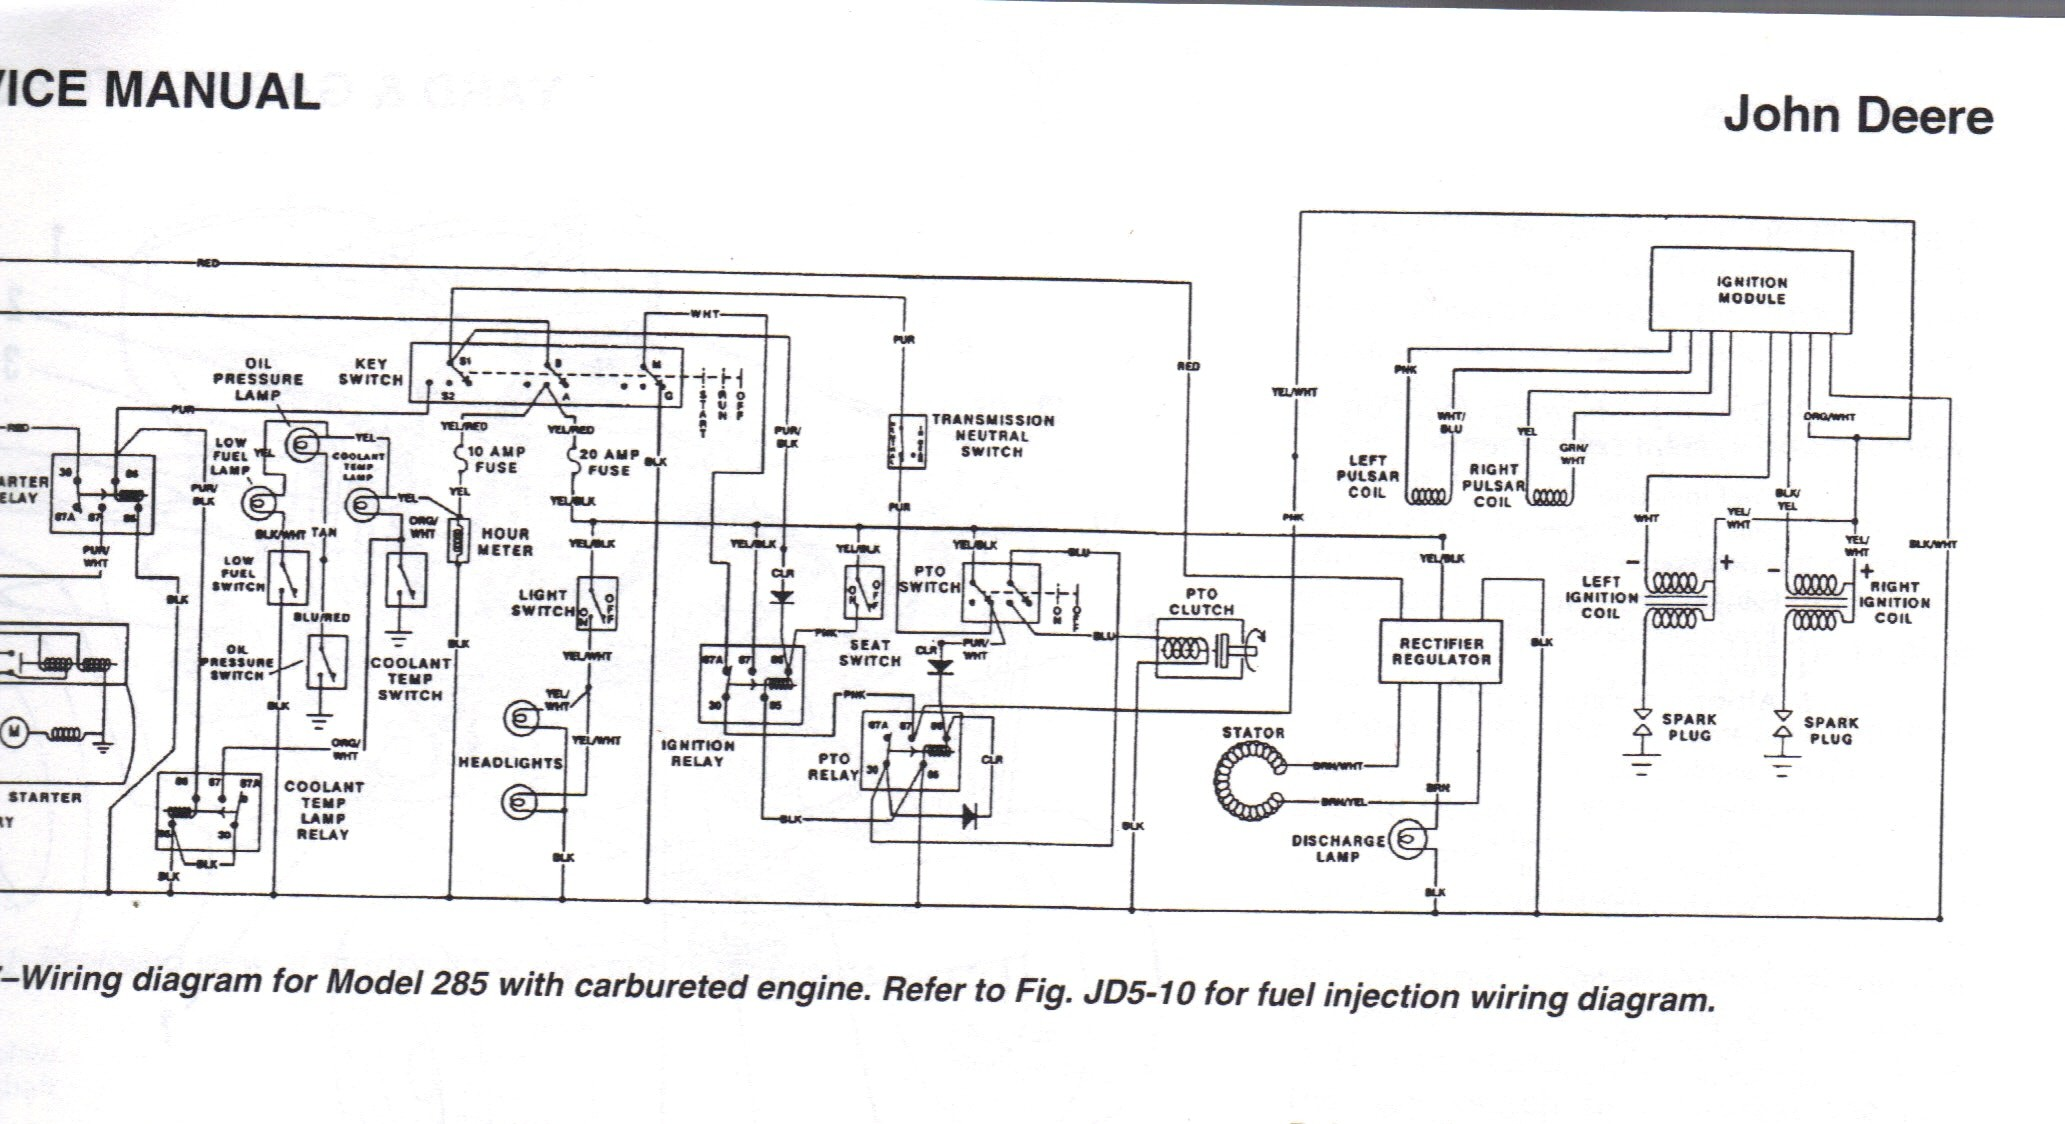 1445 John Deere Ignition Wiring Diagram Auto Electrical Wiring Diagram John  Deere 1445 Manual 1445 John Deere Ignition Wiring Diagram